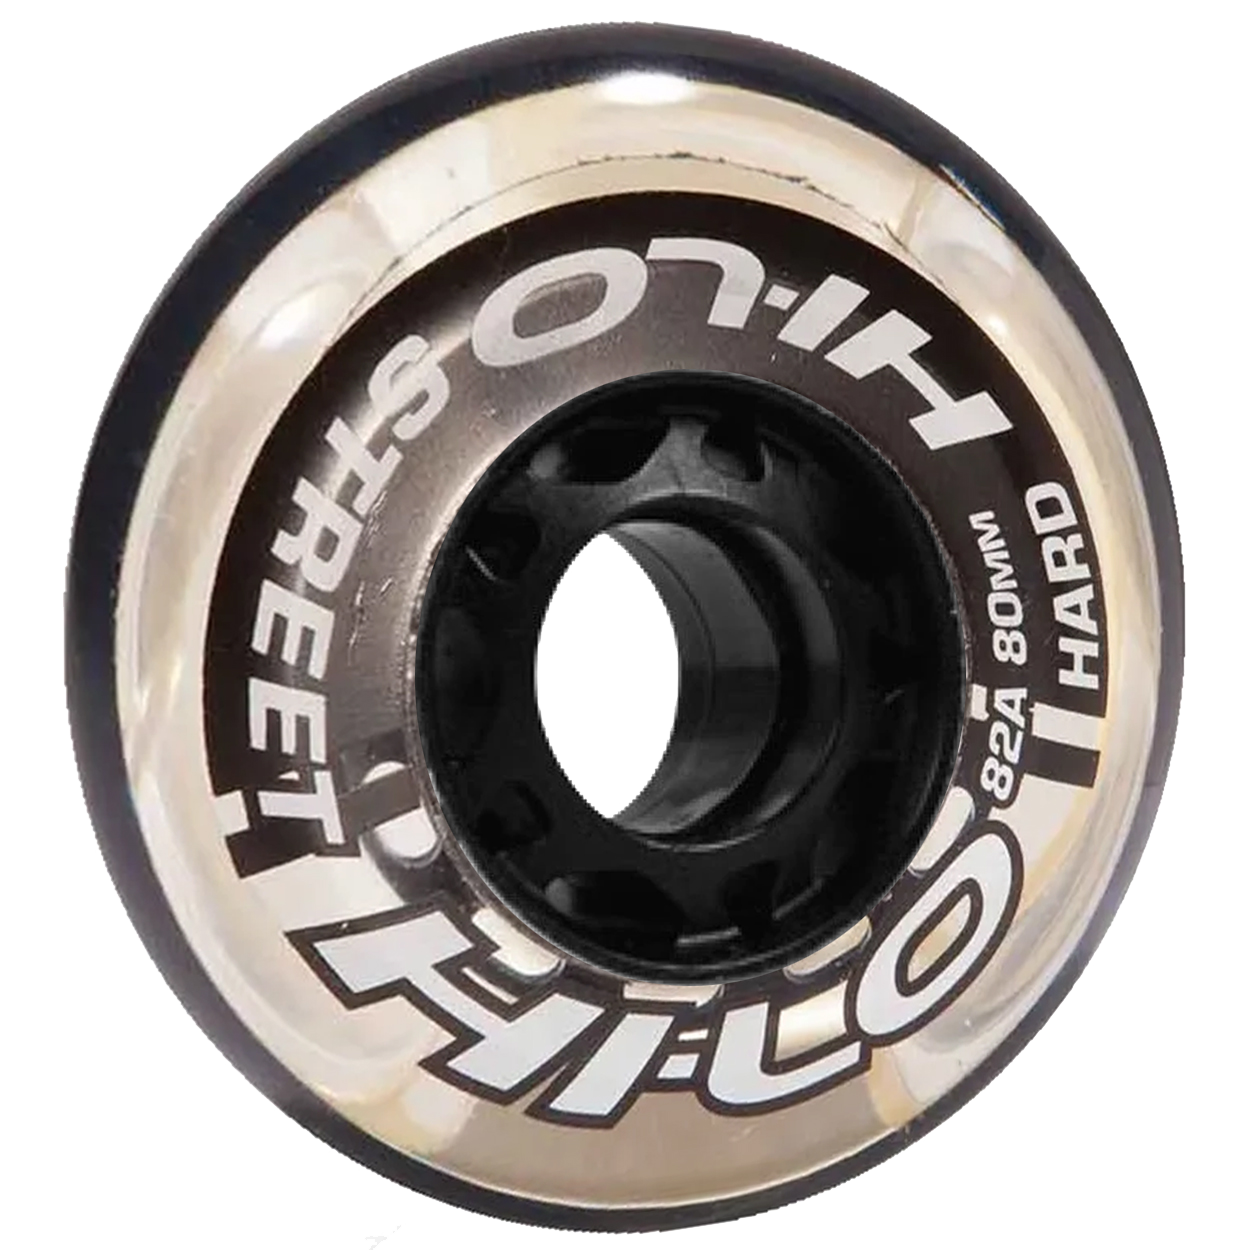 HI-LO STREET ROLLER HOCKEY WHEELS 4PK S16 (OUTDOOR),,Medium